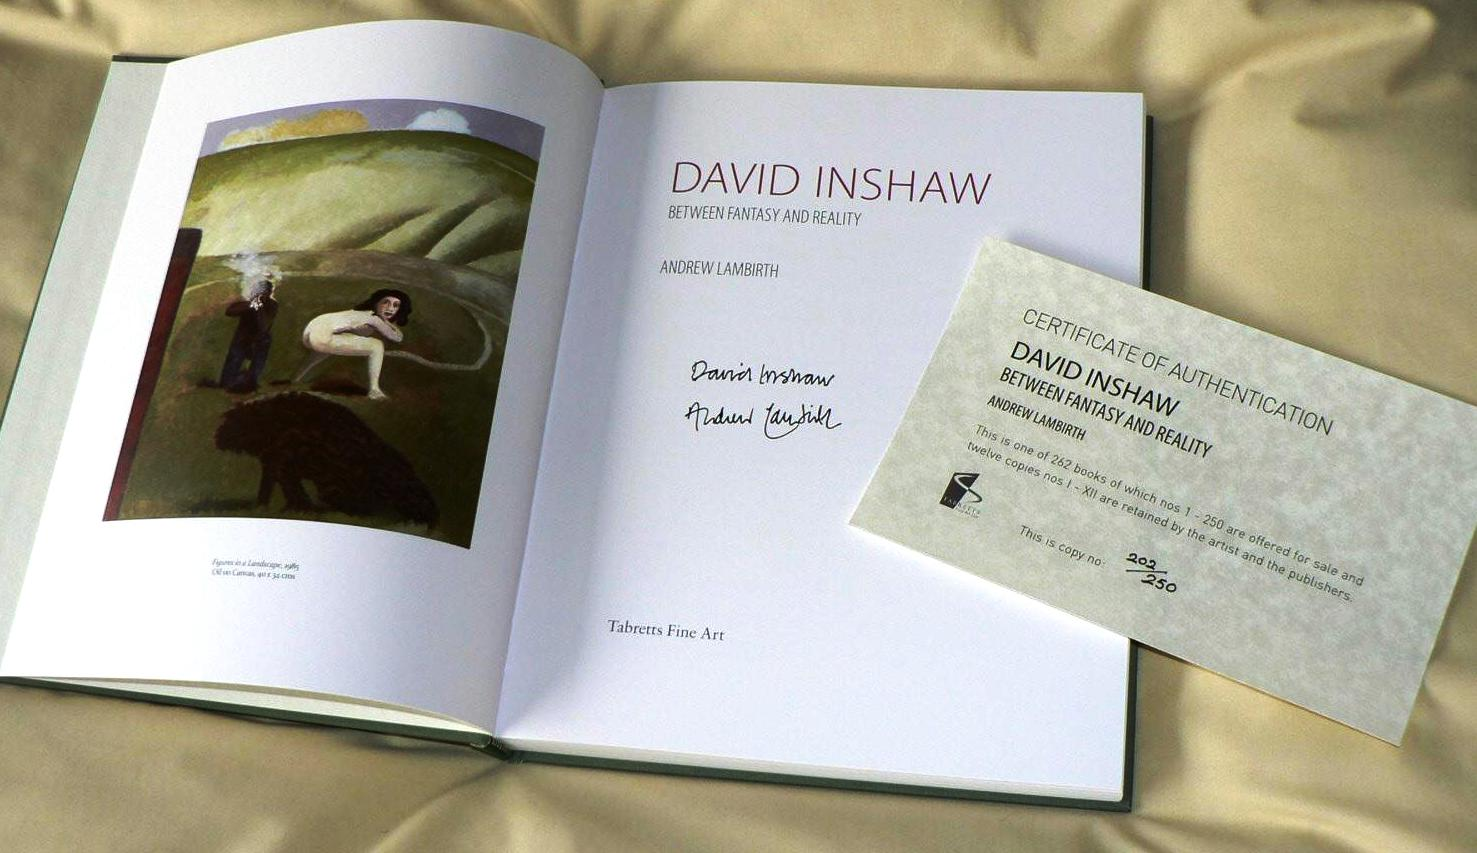 David Inshaw: Between Fantasy and Reality